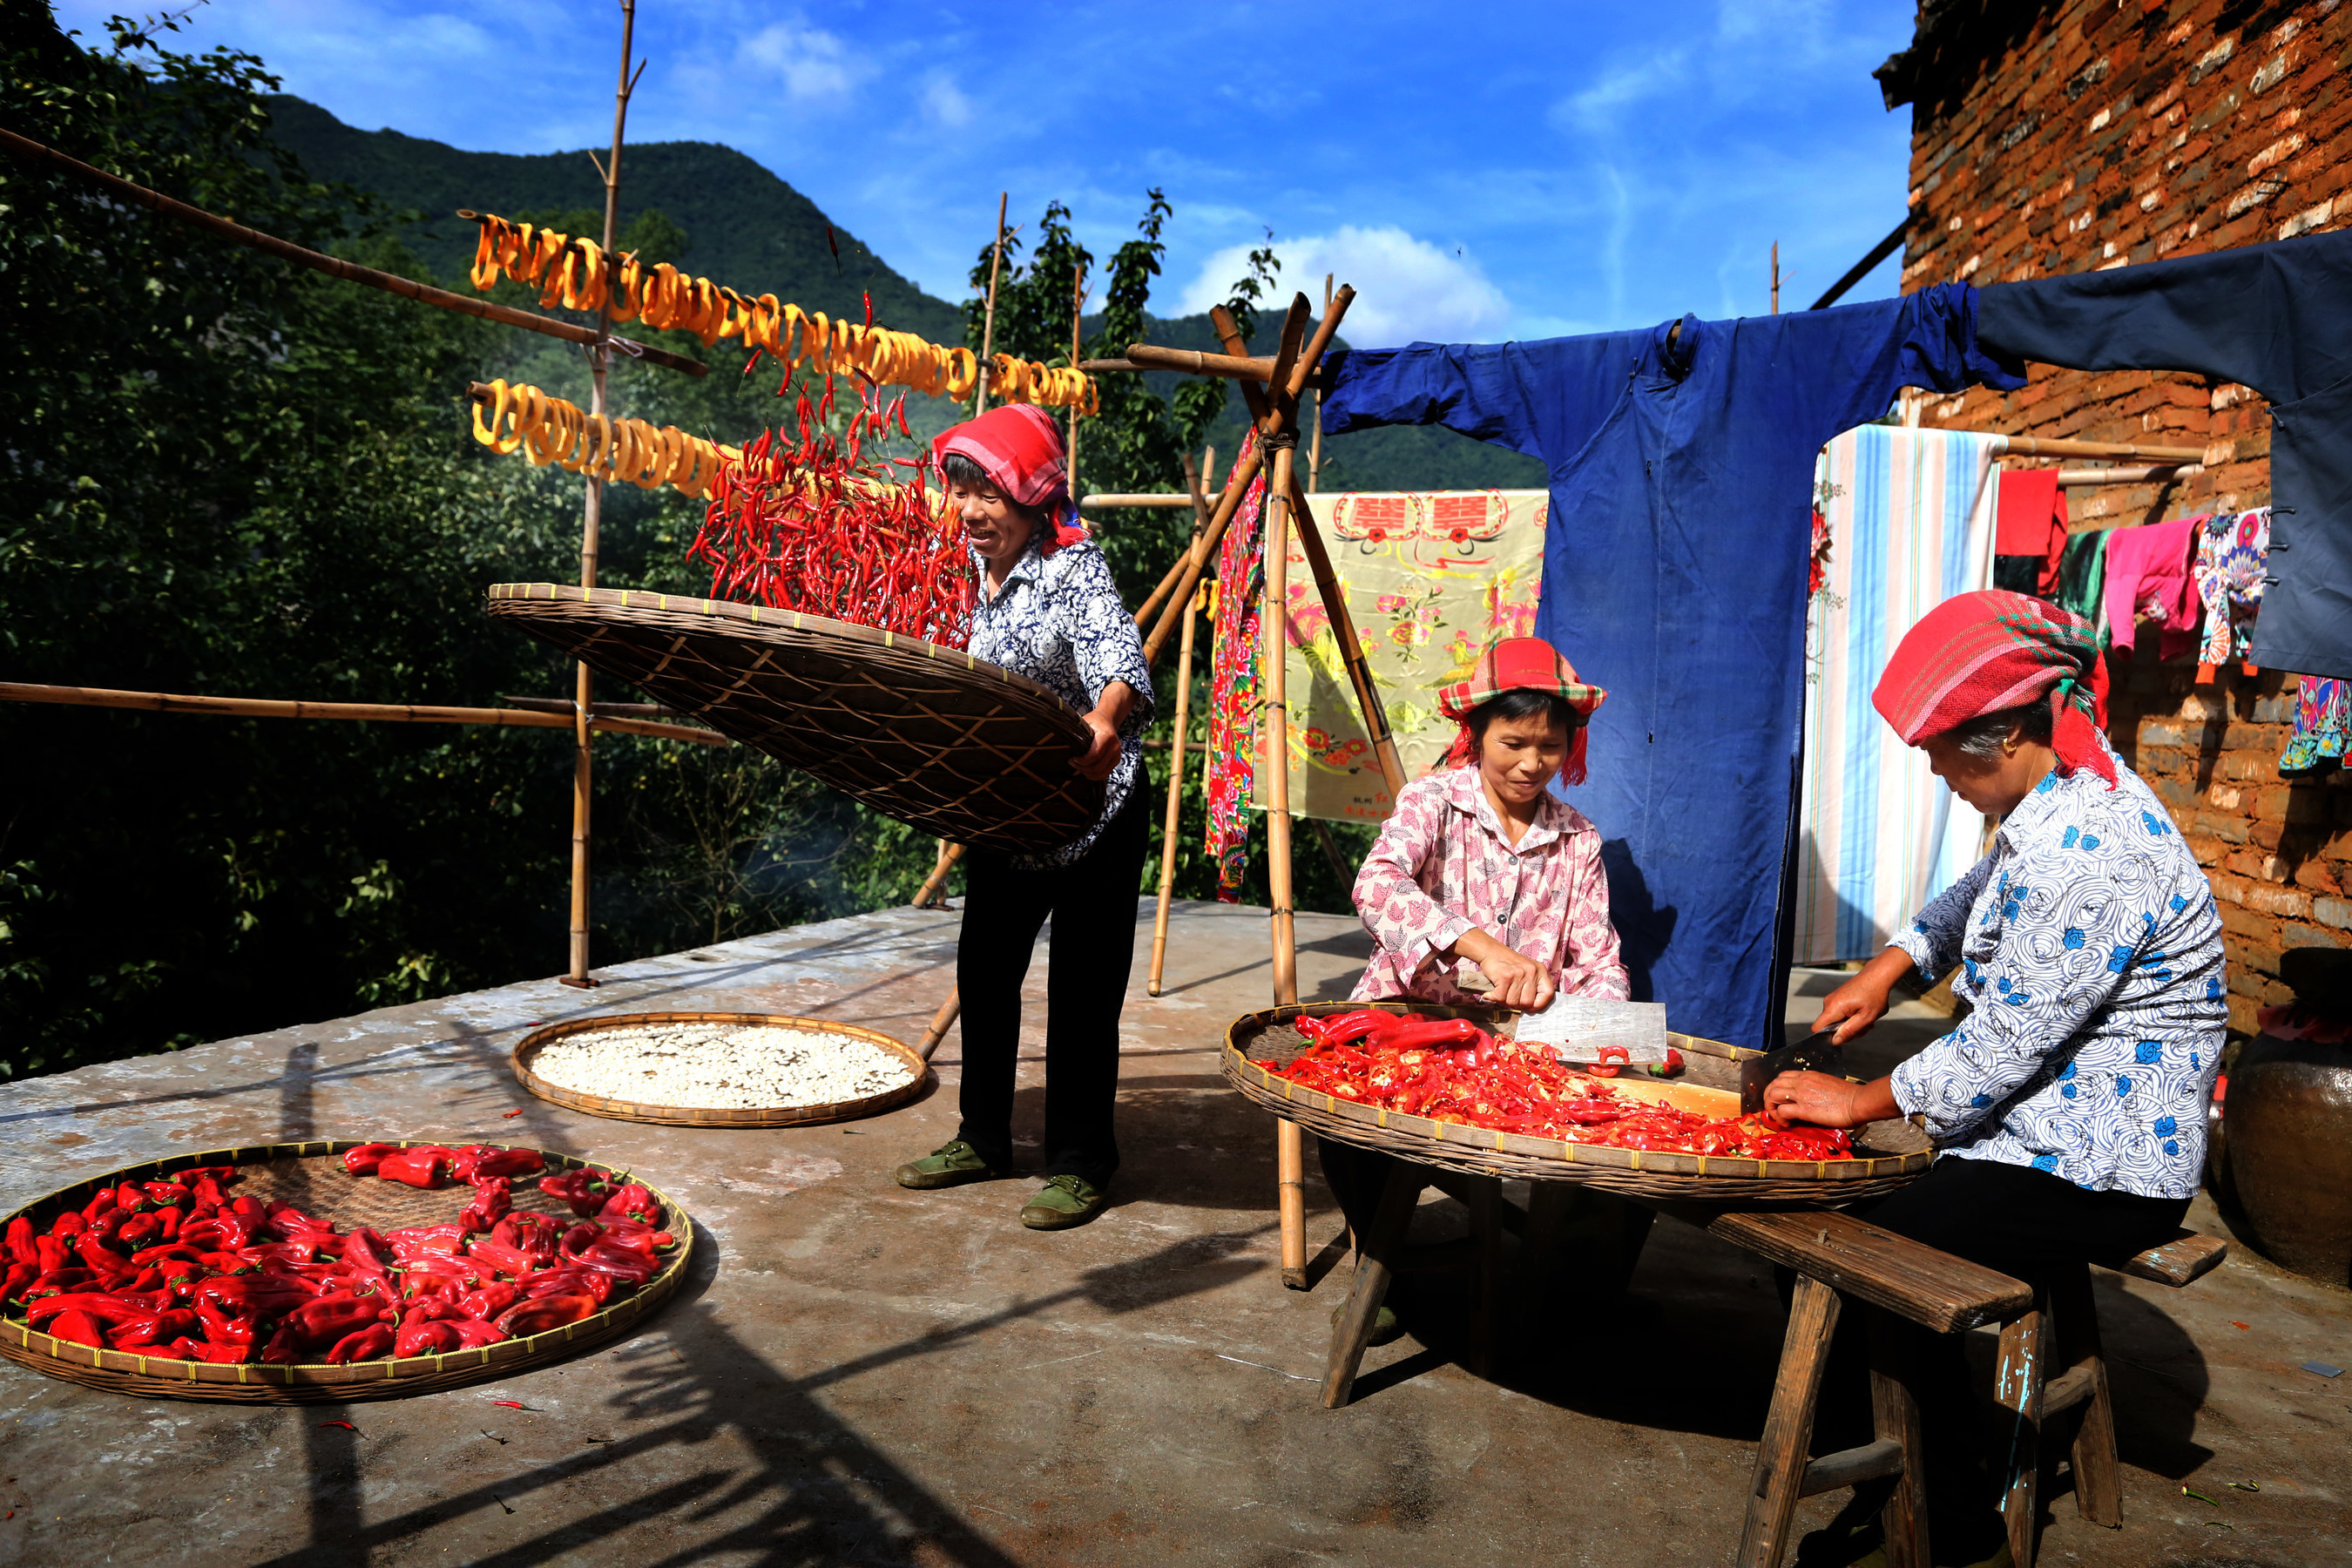 Huangling's signature spectacle shaiqiu is a symbol of the village's historic and cultural heritage. Throughout the year, villagers are sun drying harvests and produces like hot chili peppers, pumpkin slices and chrysanthemum flowers in bamboo baskets on rooves across Huangling to preserve the foods. (Photo: Qun Liu)